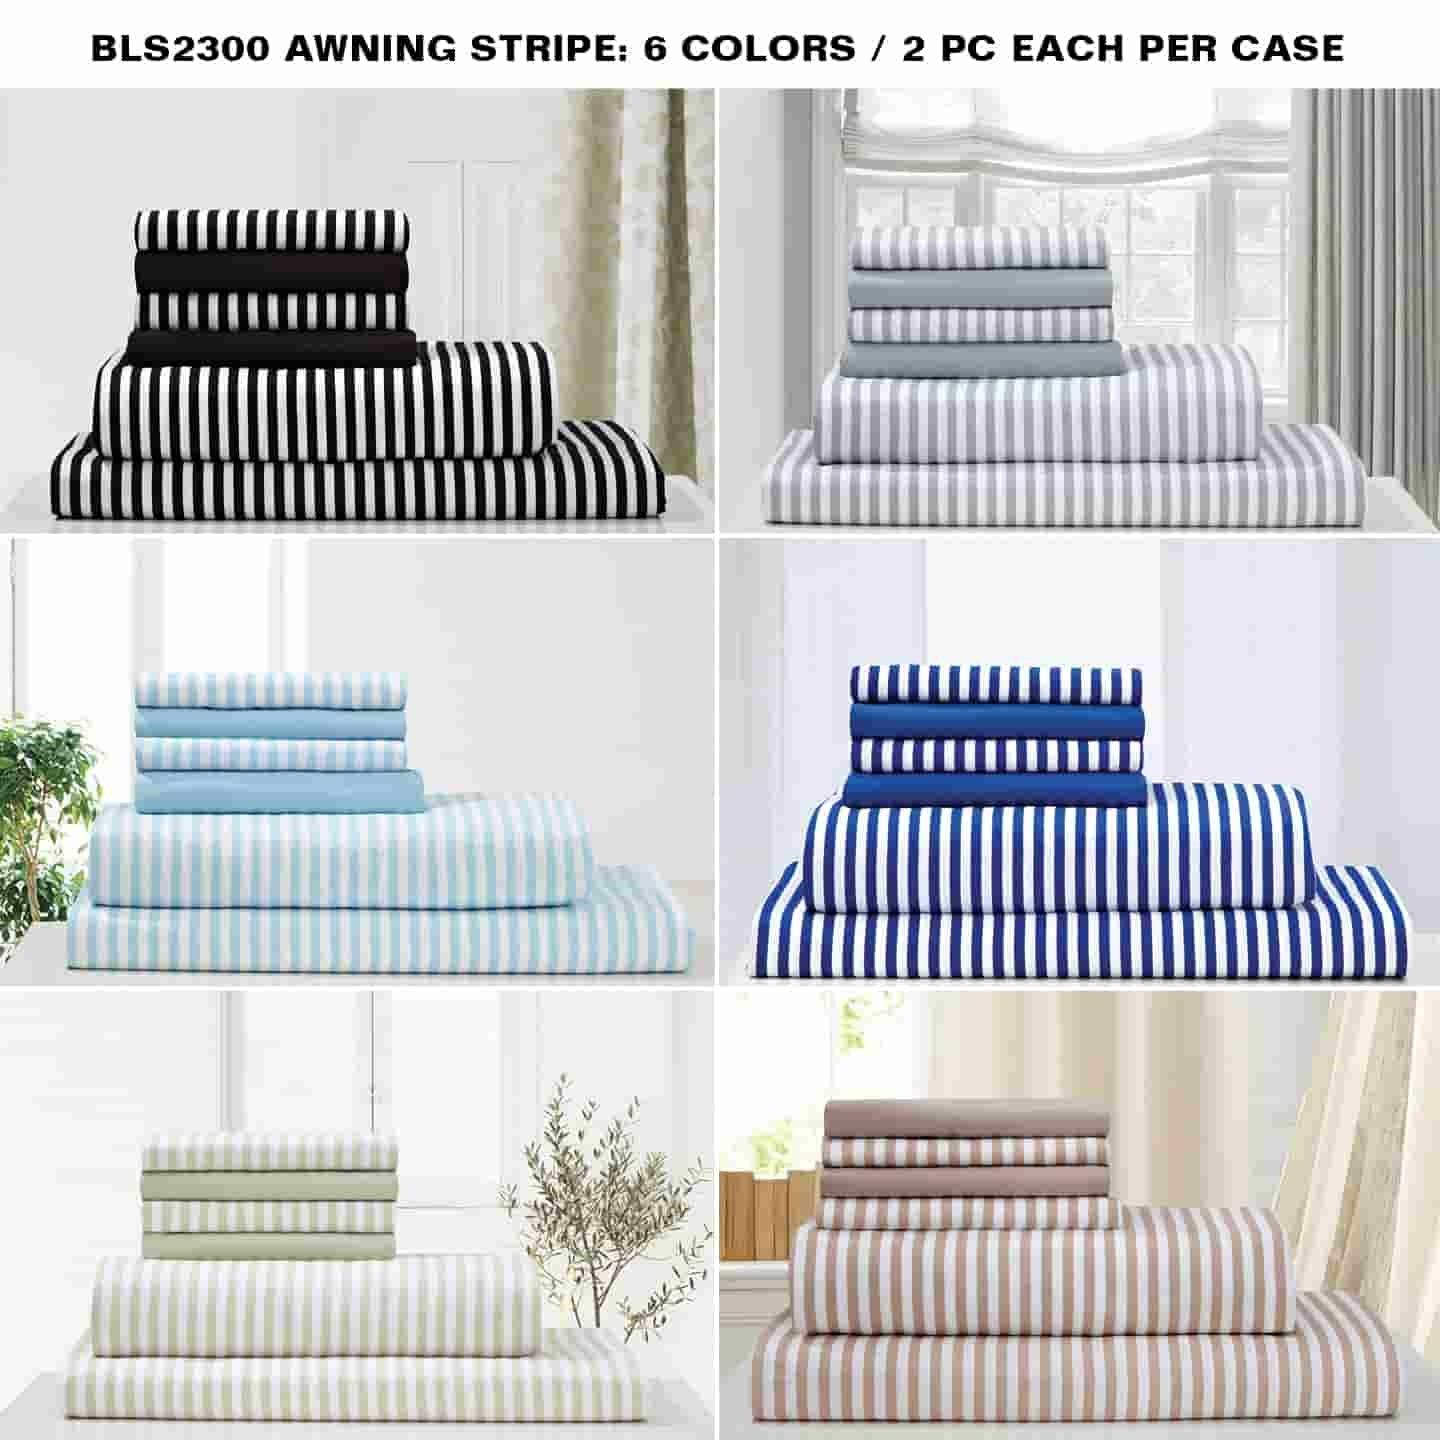 Queen Size Assorted Virah Bella® 2300 Series Awning Stripe Hotel Quality  Bed Sheet Set